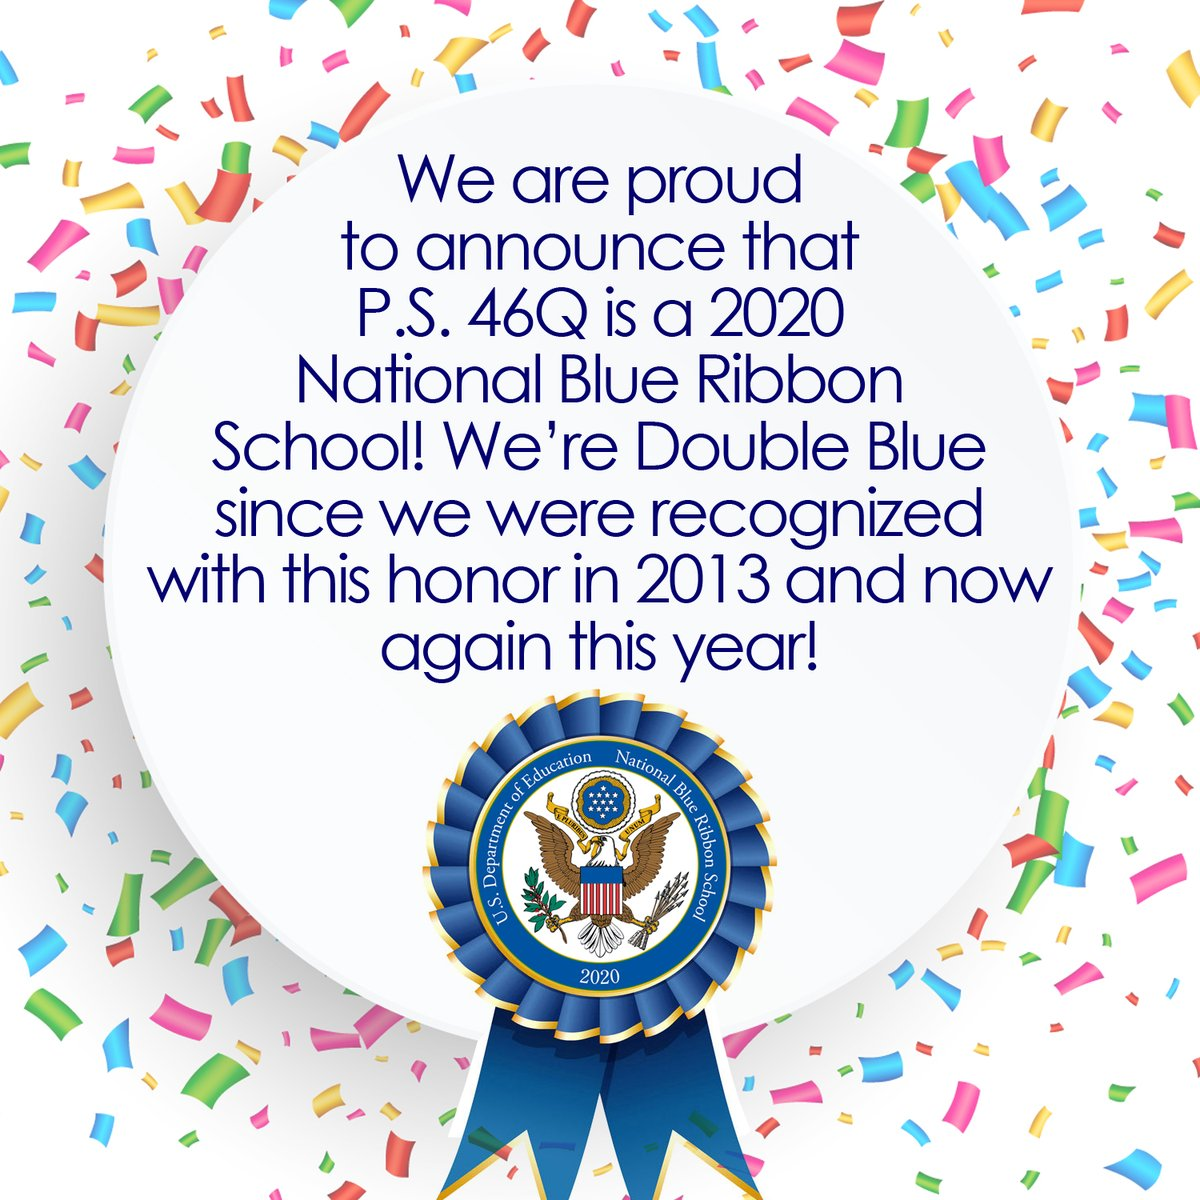 It is with great honor to share that today P.S. 46Q was recognized as a 2020 National Blue Ribbon School! #NBRS2020 #NBRS2013 @D26Team @BarryGrodenchik @nily @Aviles4NYC